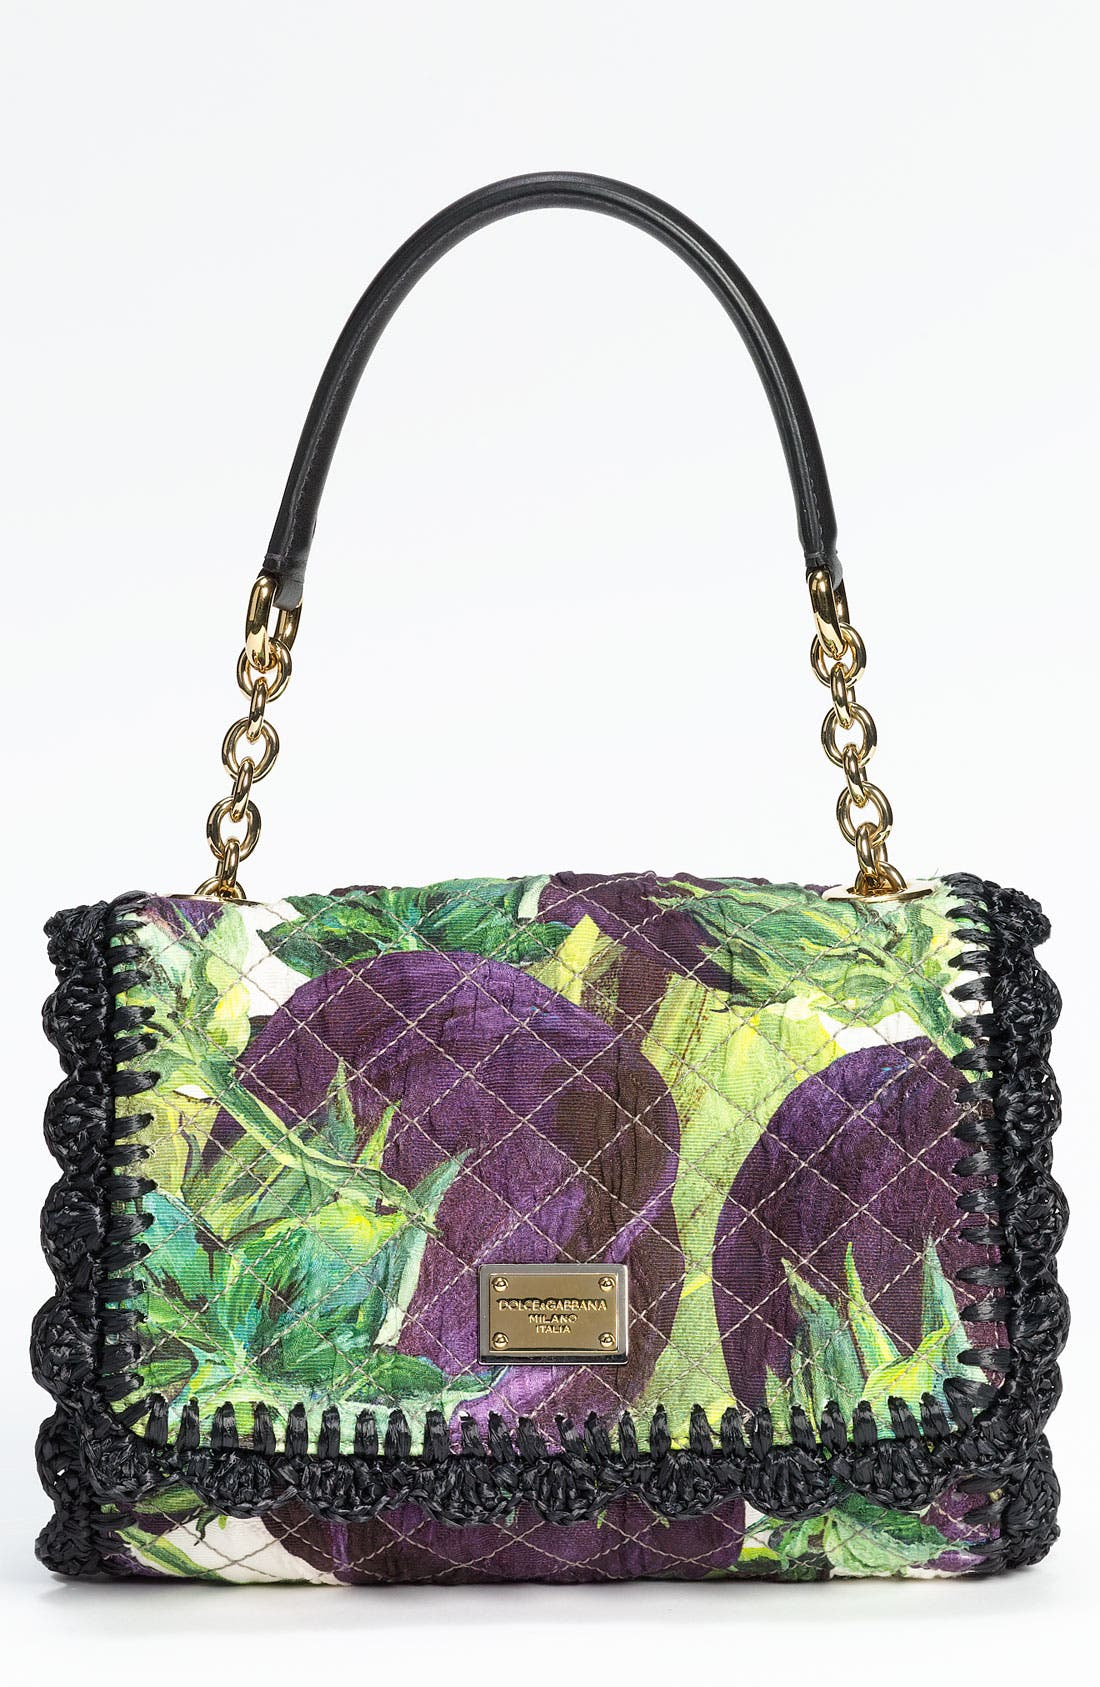 Main Image - Dolce&Gabbana 'Miss Dolce Crochet' Shoulder Bag